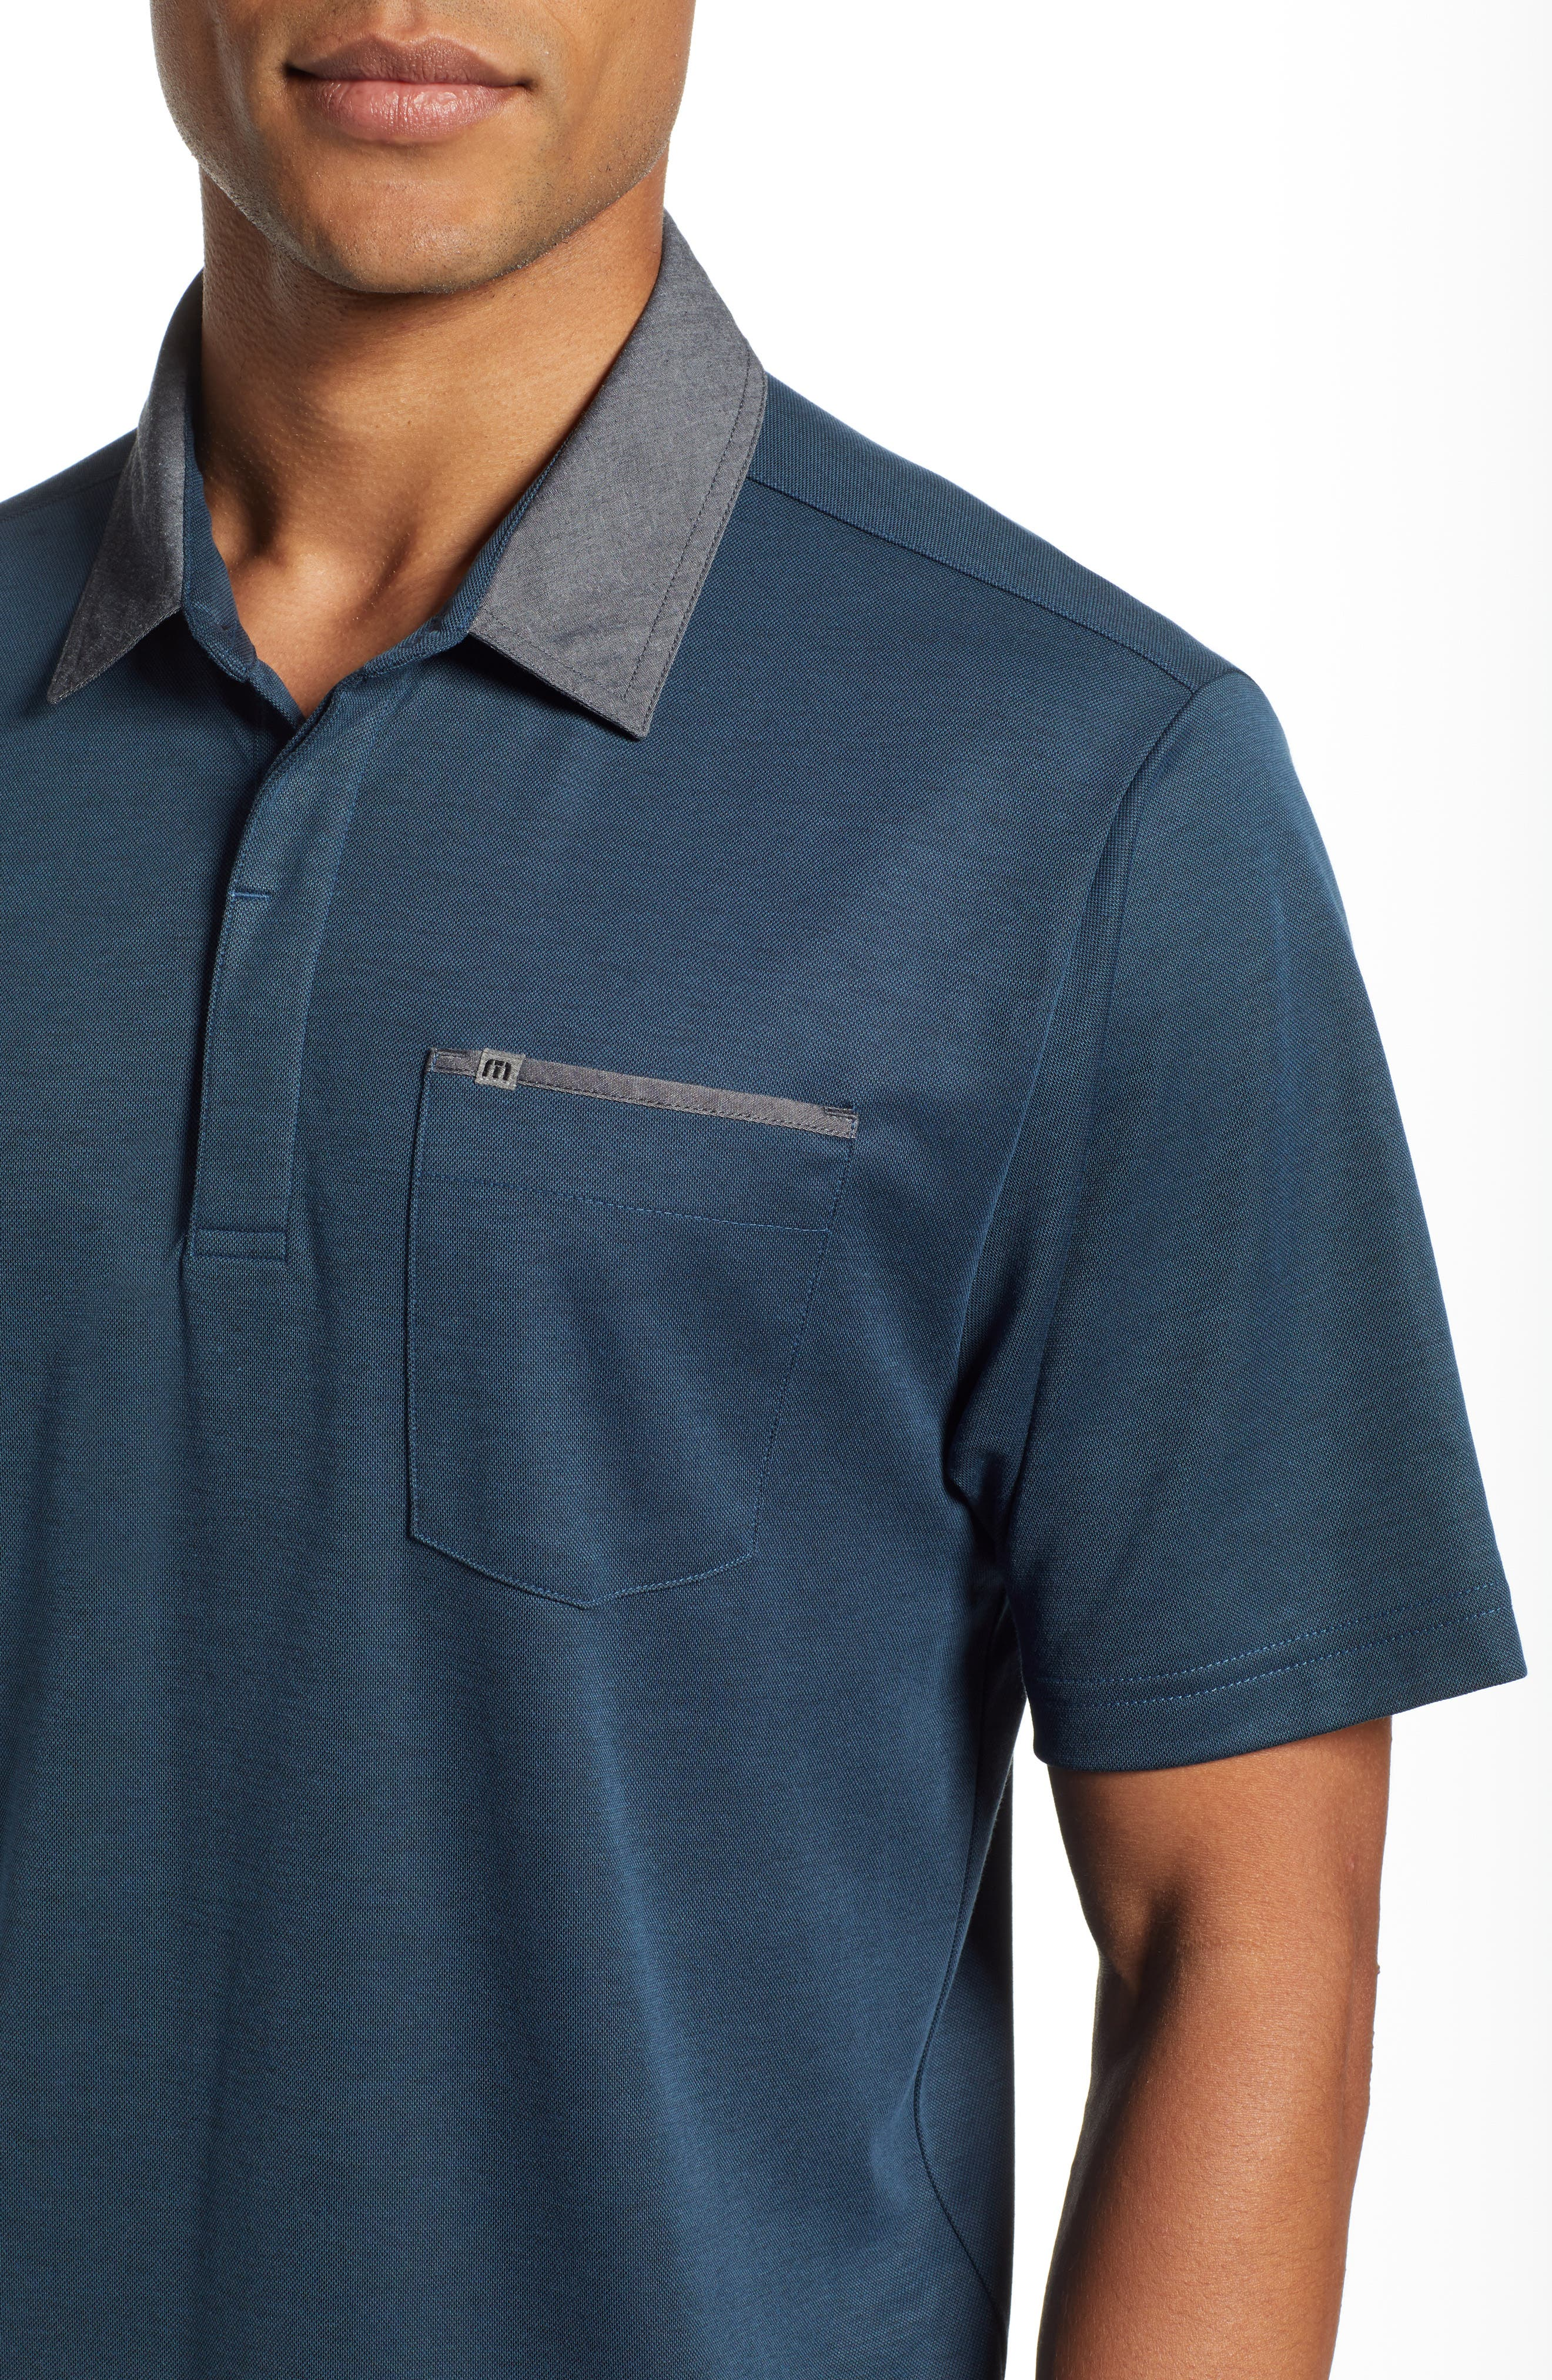 Change the Game Regular Fit Polo,                             Alternate thumbnail 4, color,                             BLUE WING TEAL/ BLACK